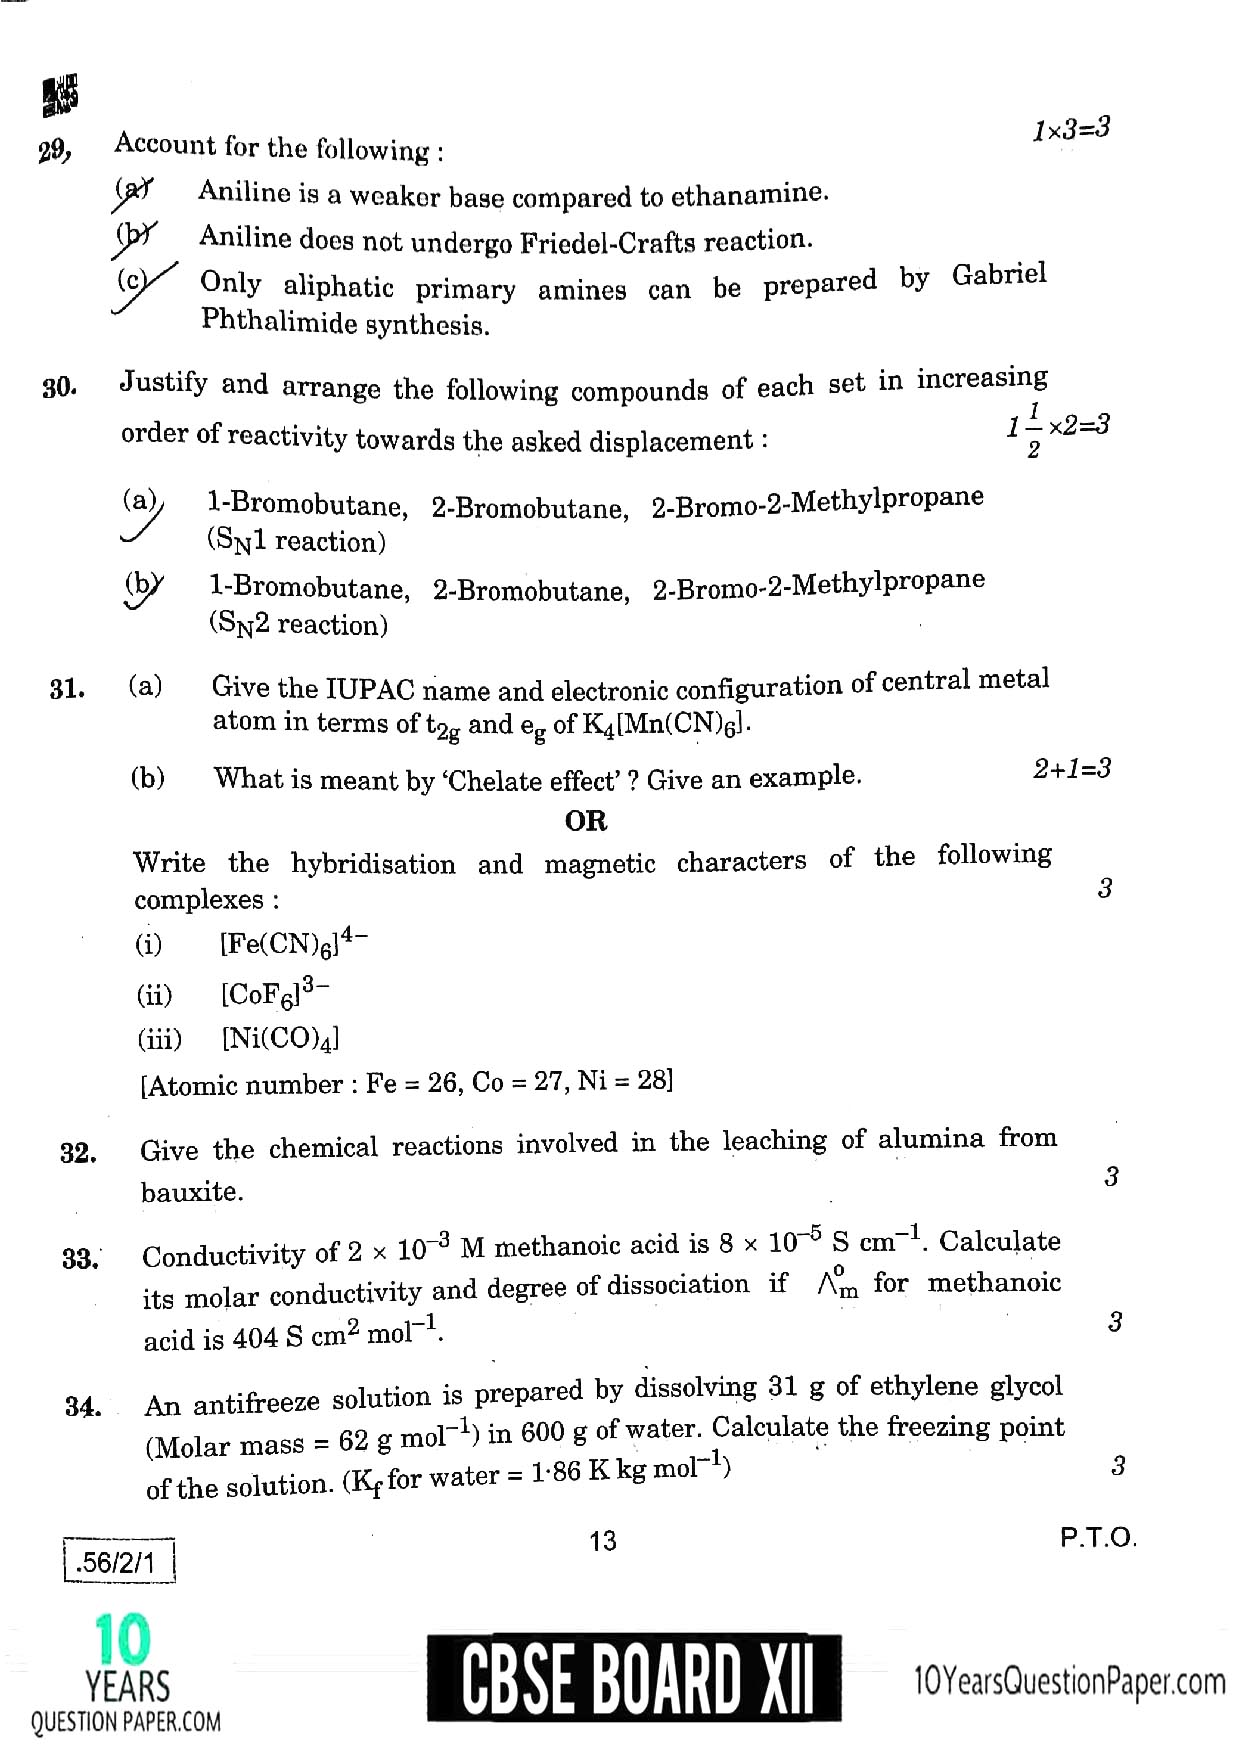 CBSE Class 12 Chemistry 2020 Question Paper 07